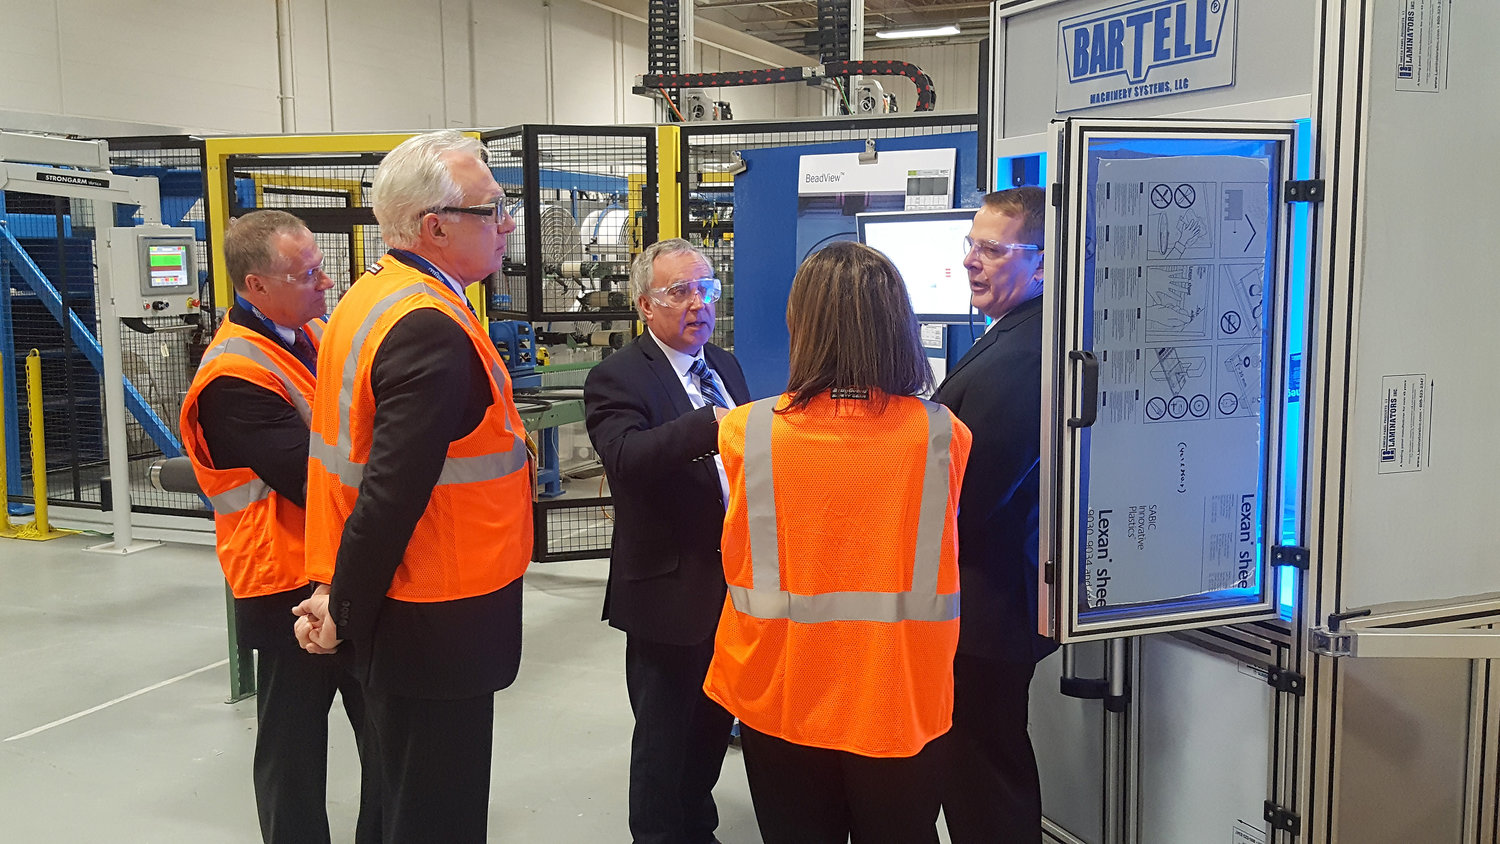 Awards, new vice president for Bartell Machinery Systems